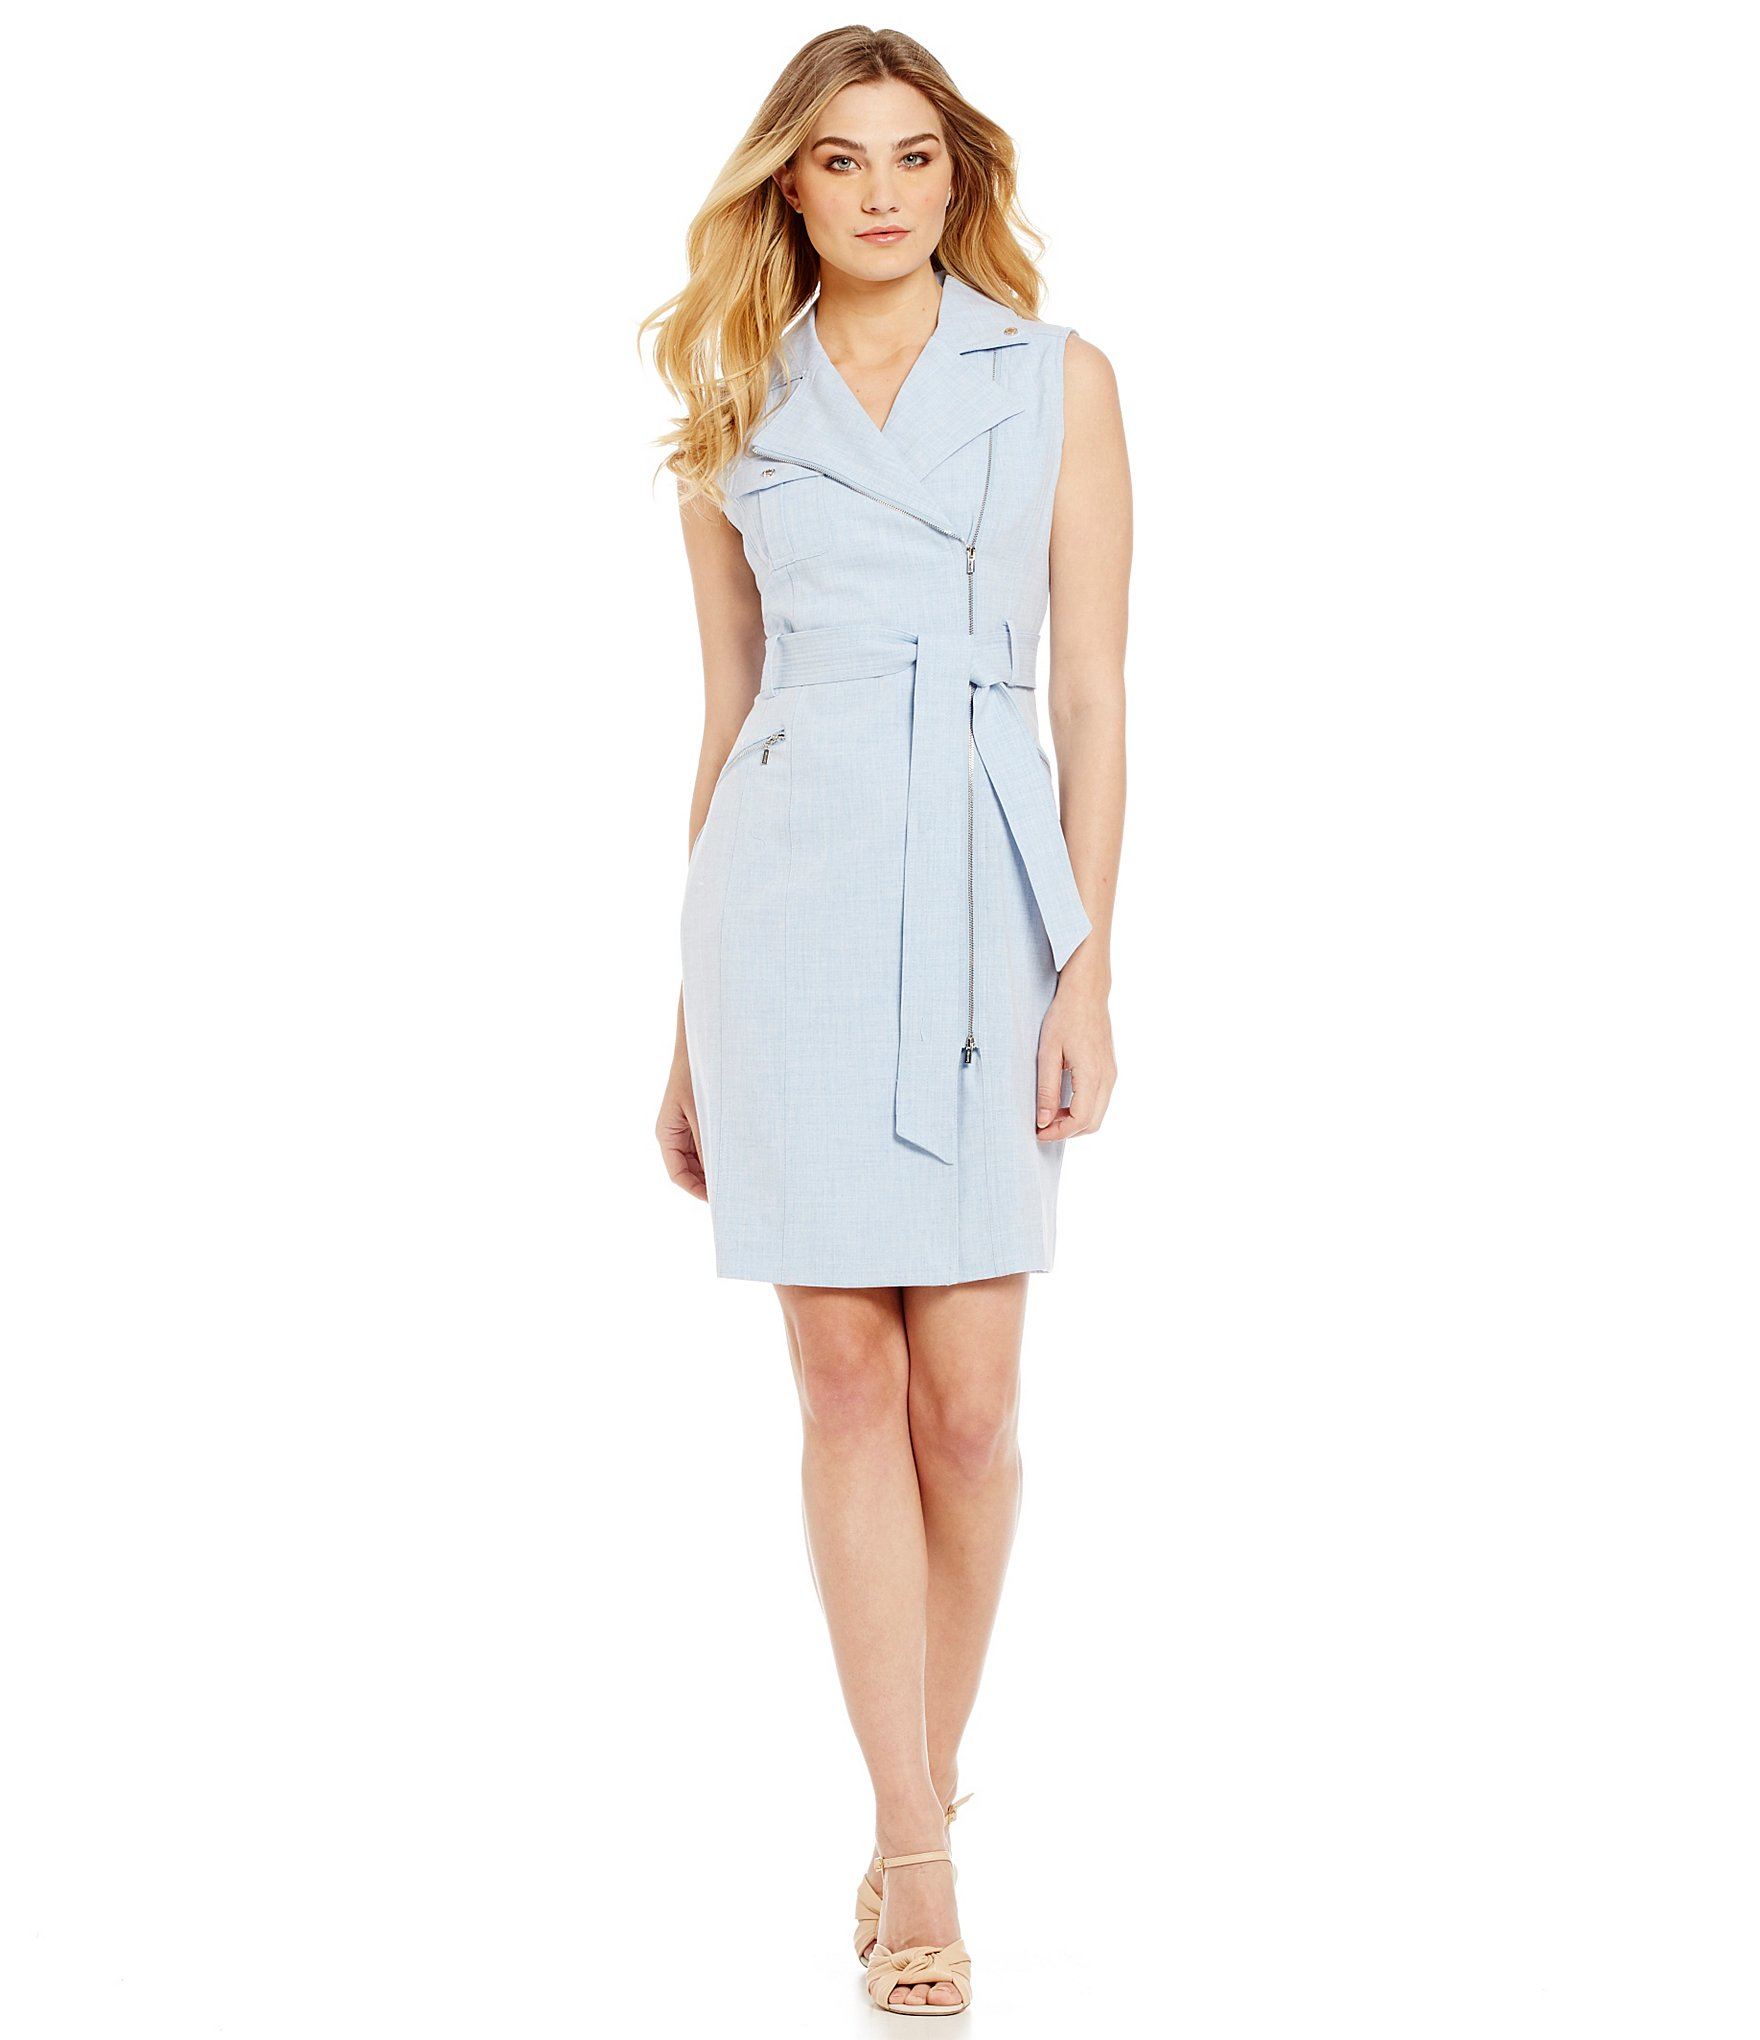 Calvin Klein Petites Belted Chambray Shirt Dress In Blue